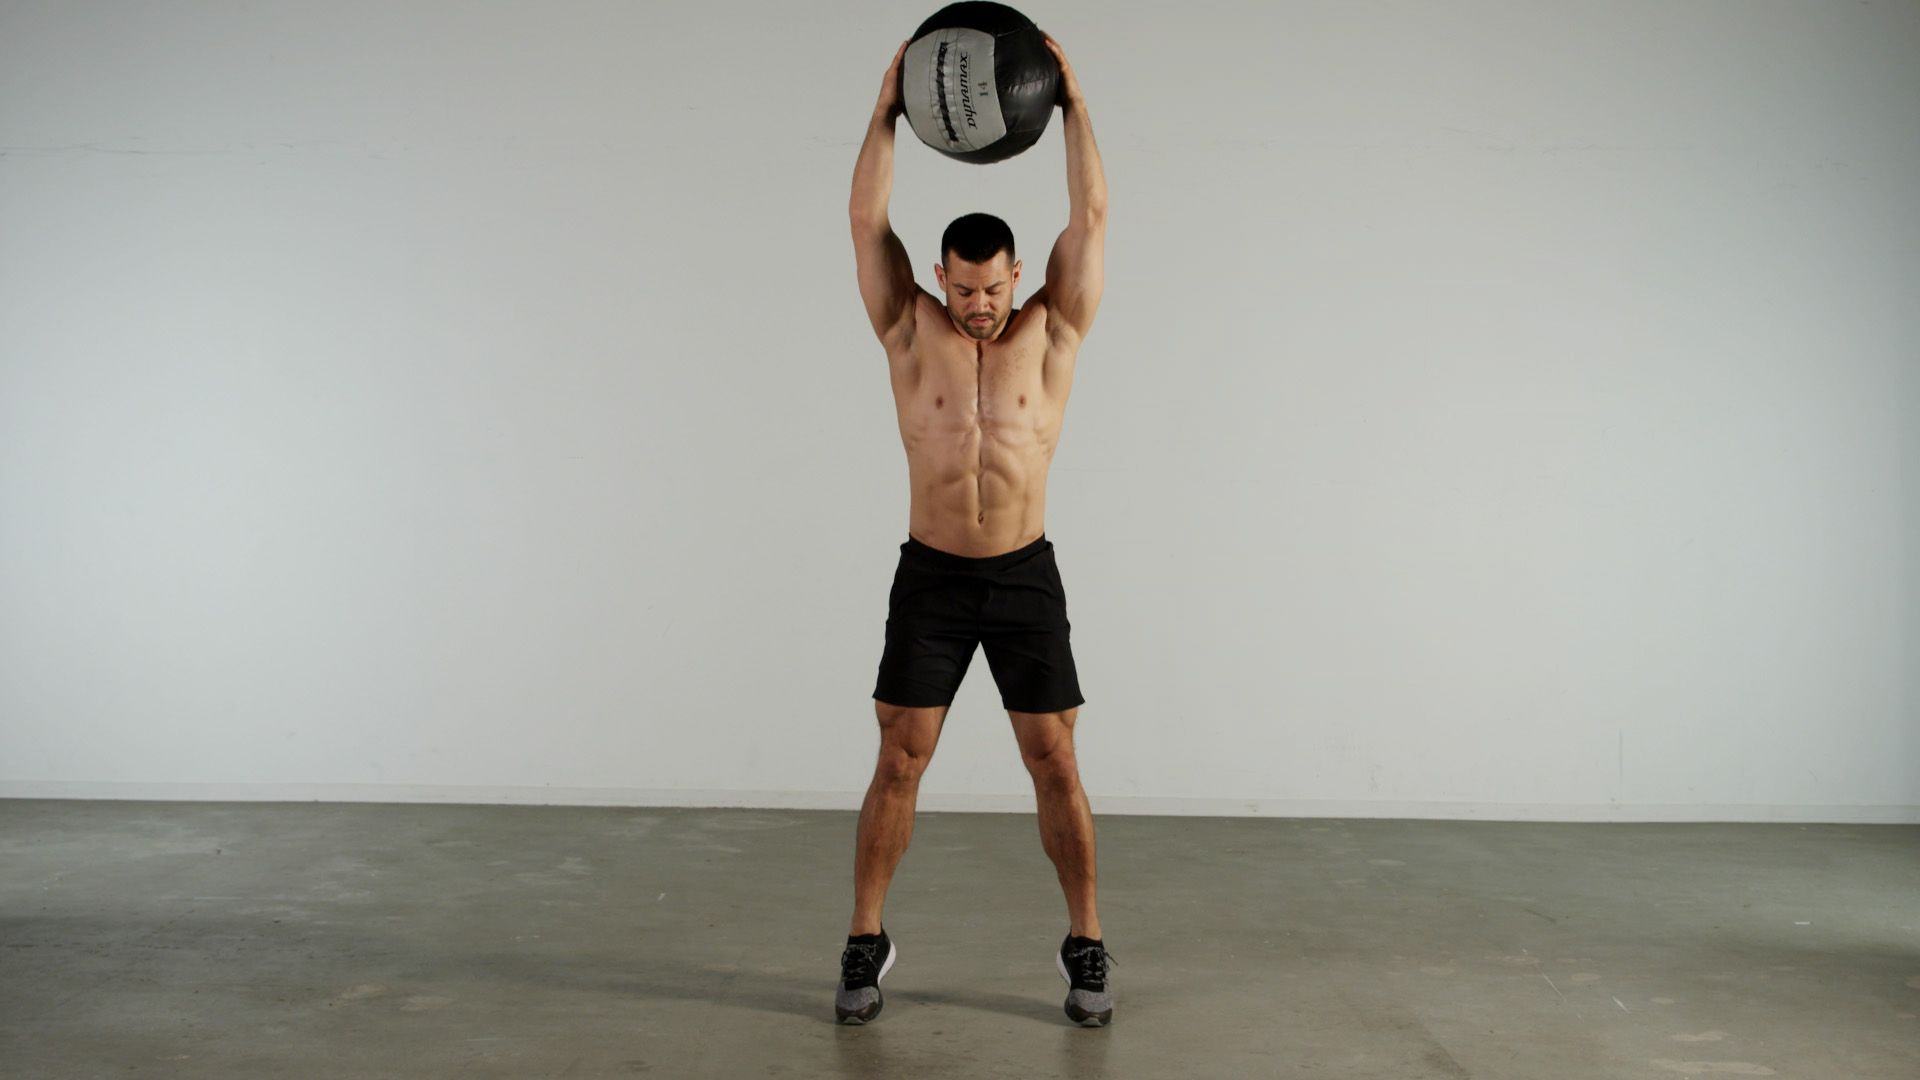 This Medicine Ball Workout Torches Your Abs and Burns Fat Simultaneously